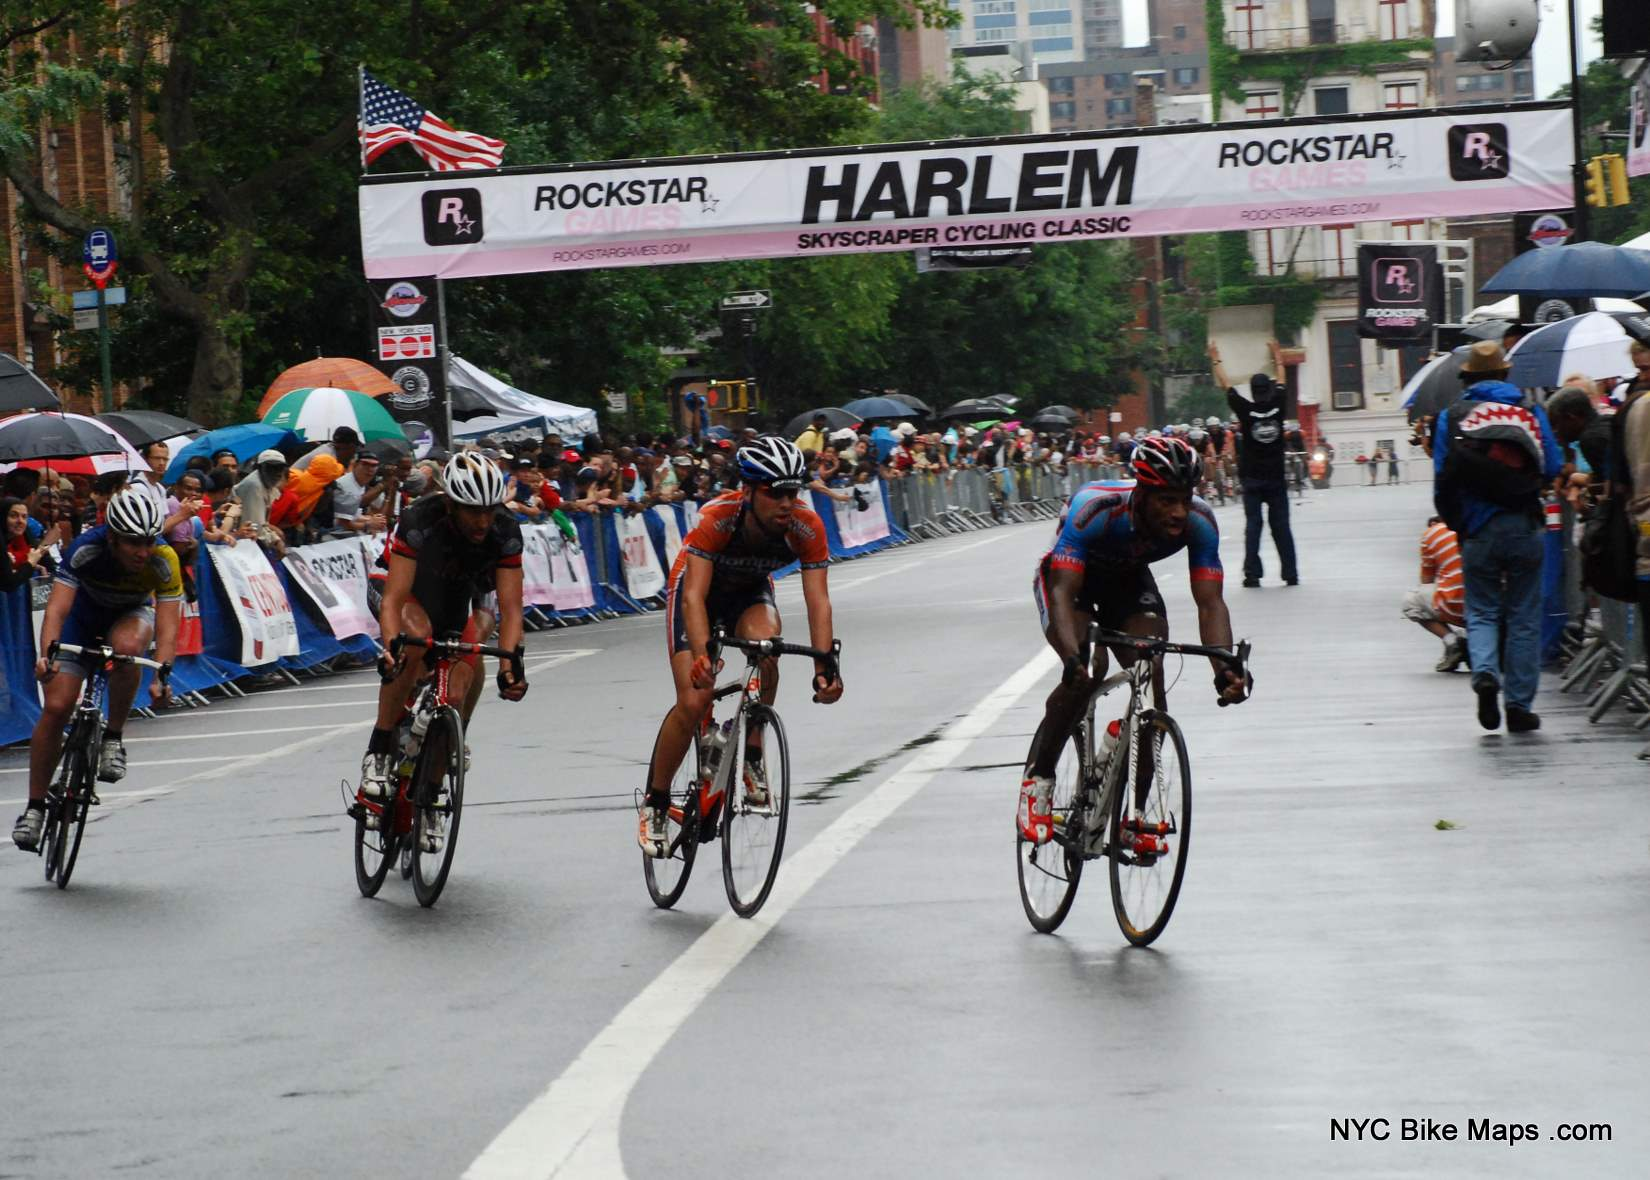 2009 David Walker Memorial Harlem Skyscraper Cycling Classic Photos